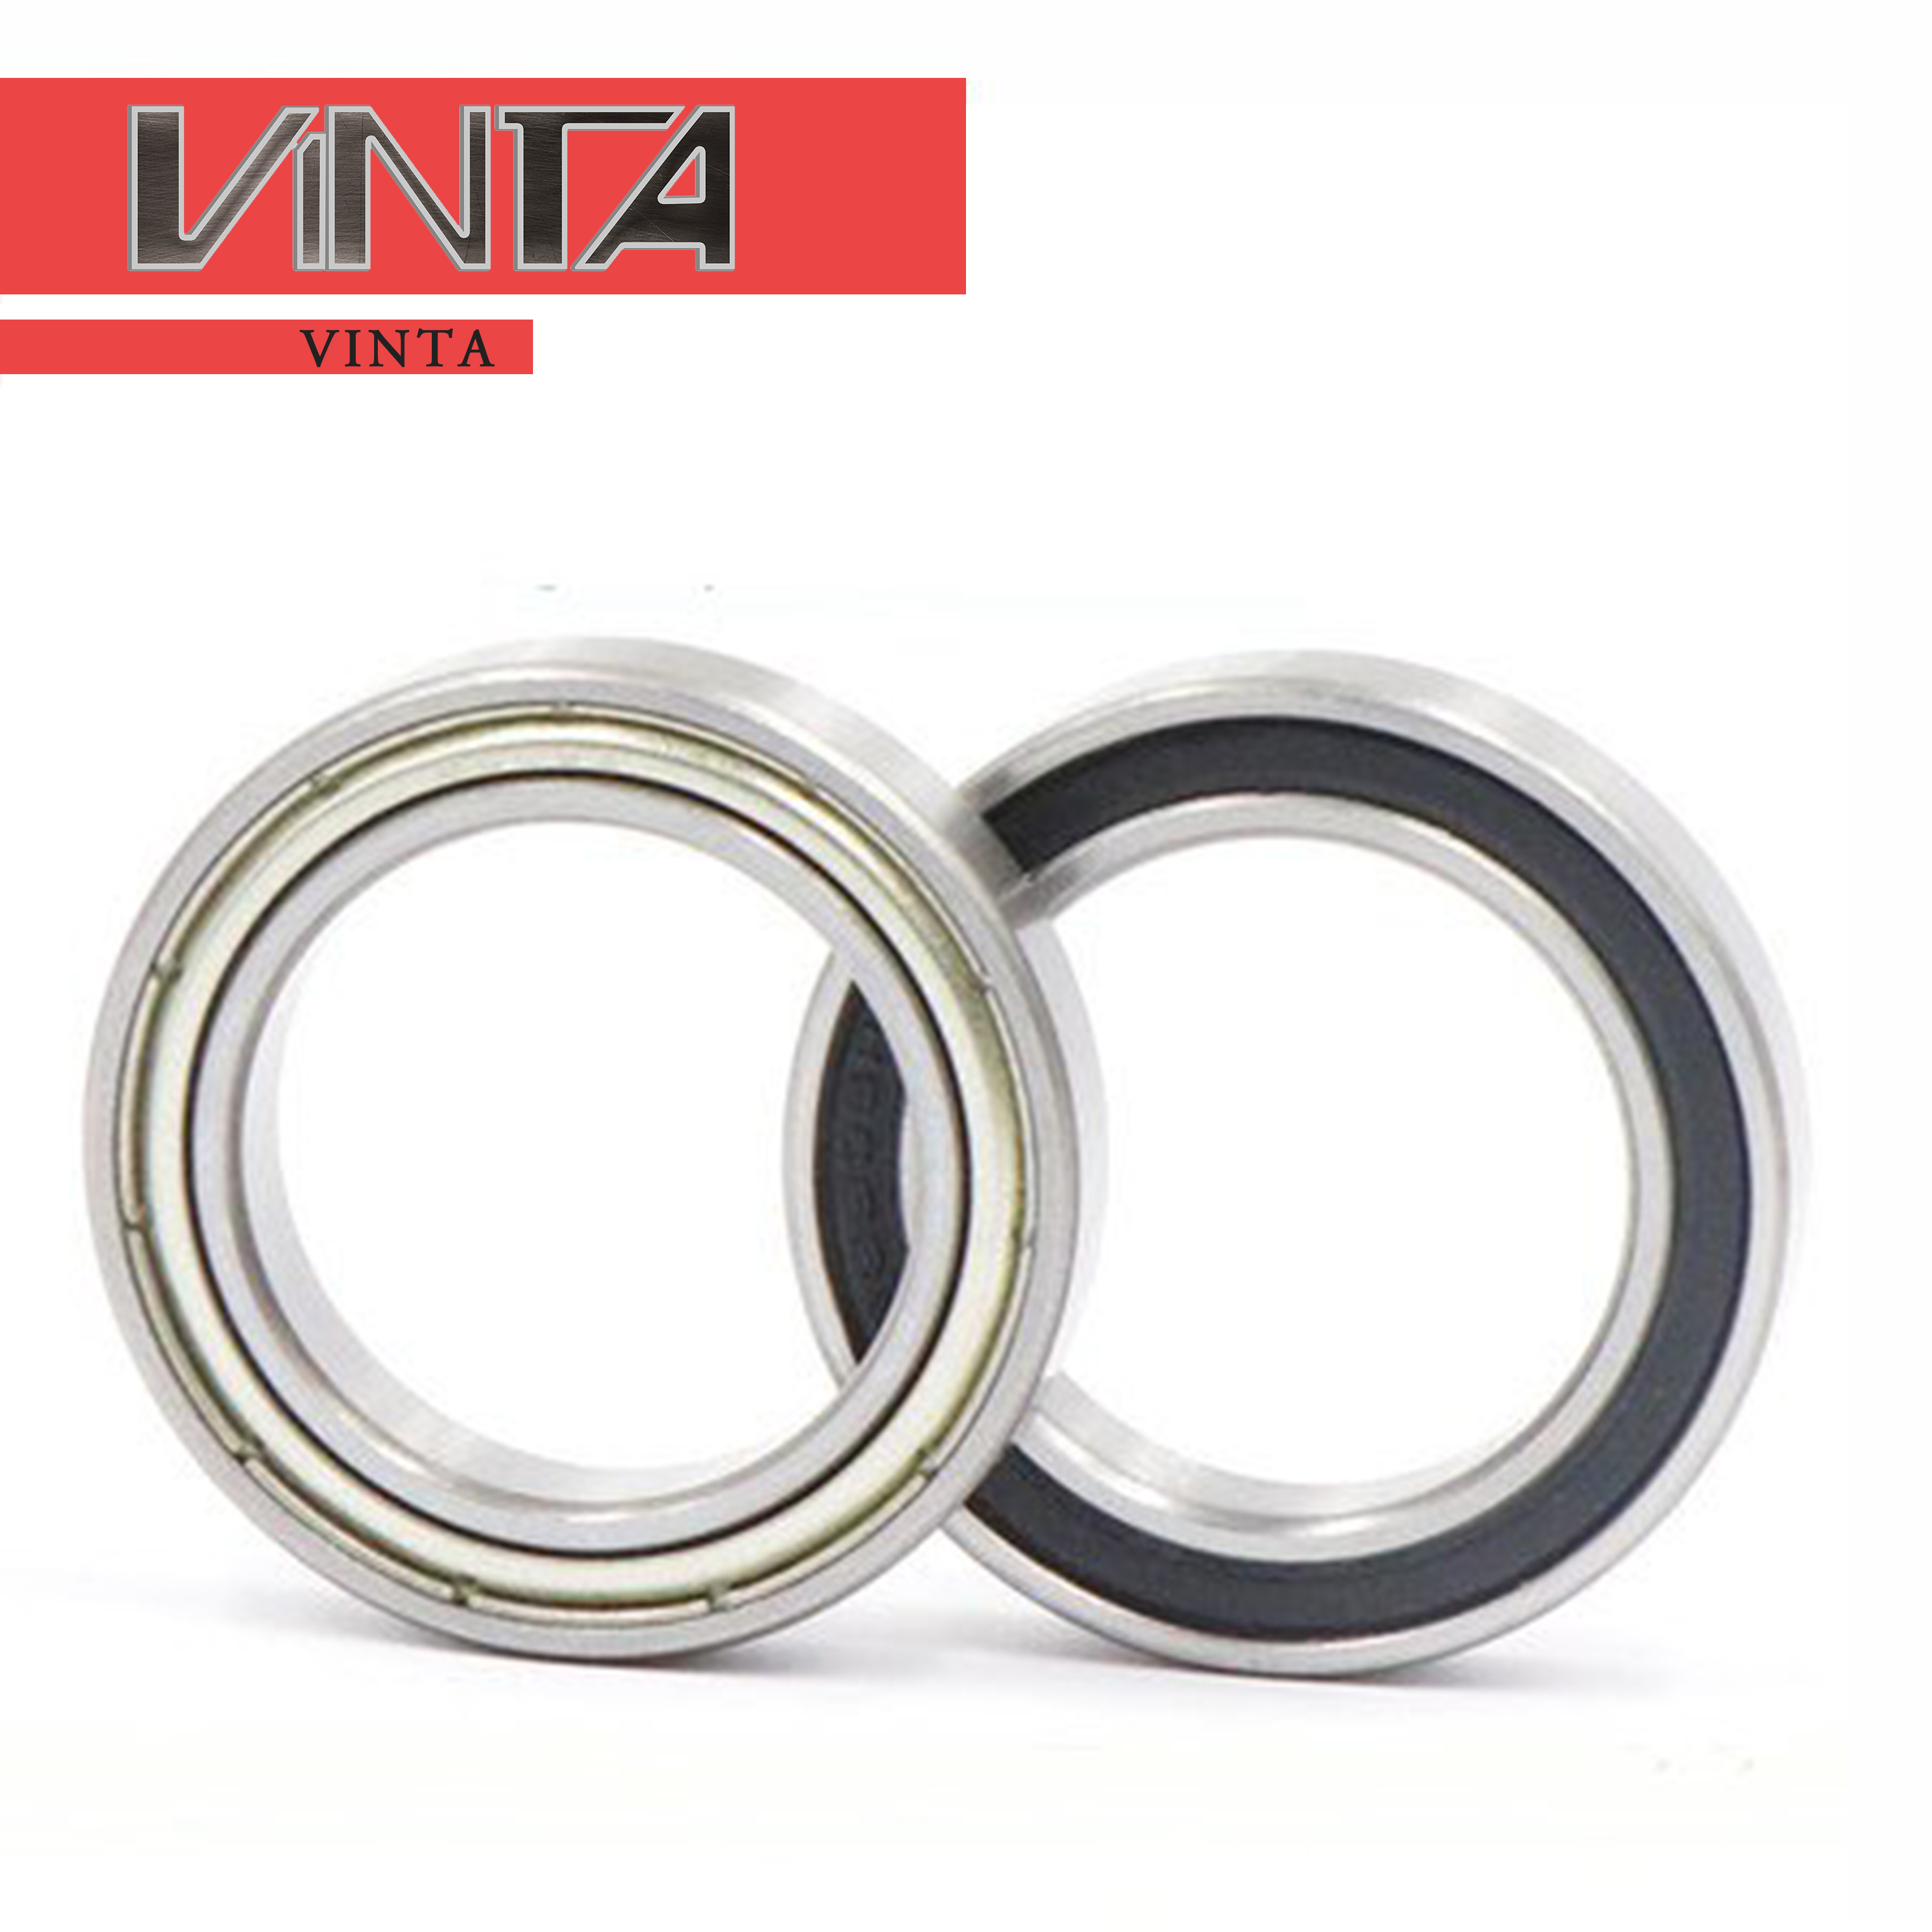 5pcs Deep Groove Ball Bearing Steel  61813 61814 61815 61816 61817 ZZ RS High Quality Steel High Speed Tools Spindle Motor